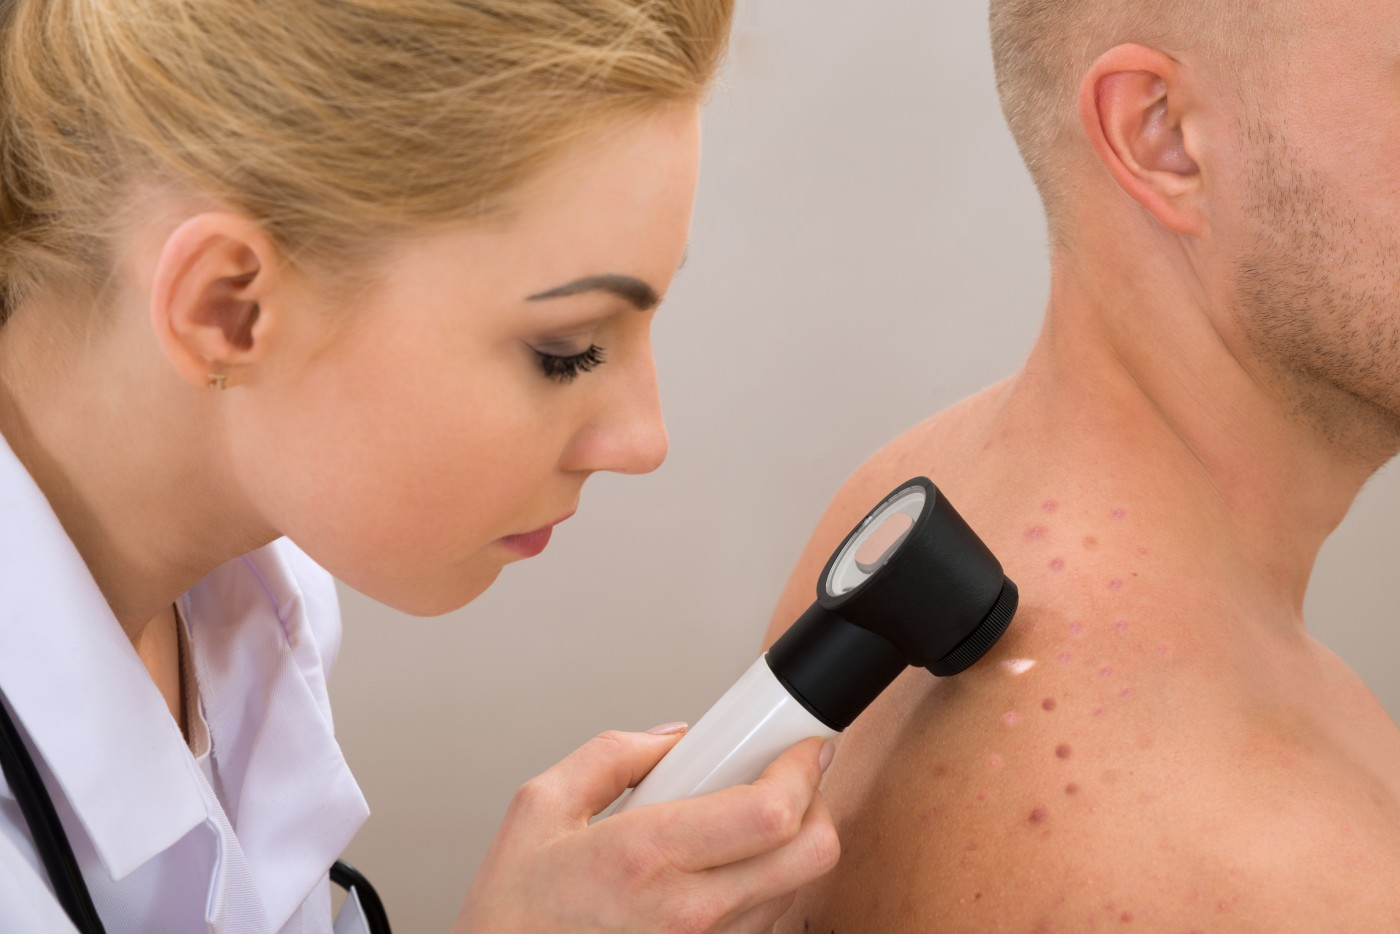 Pensioners in the UK More Likely To Be Diagnosed With Malignant Melanoma